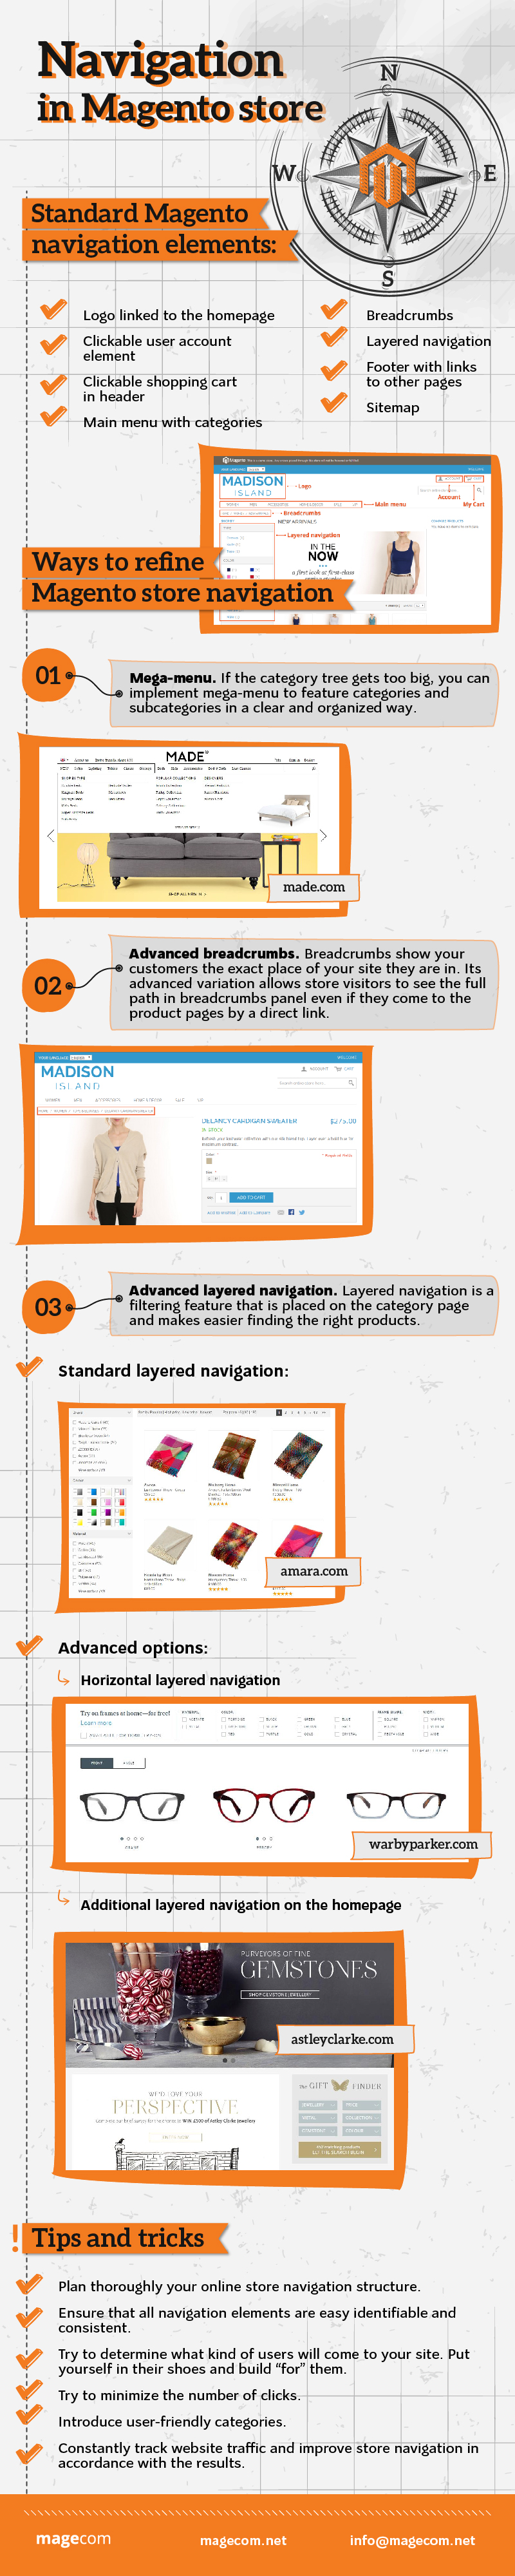 Navigation in Magento store